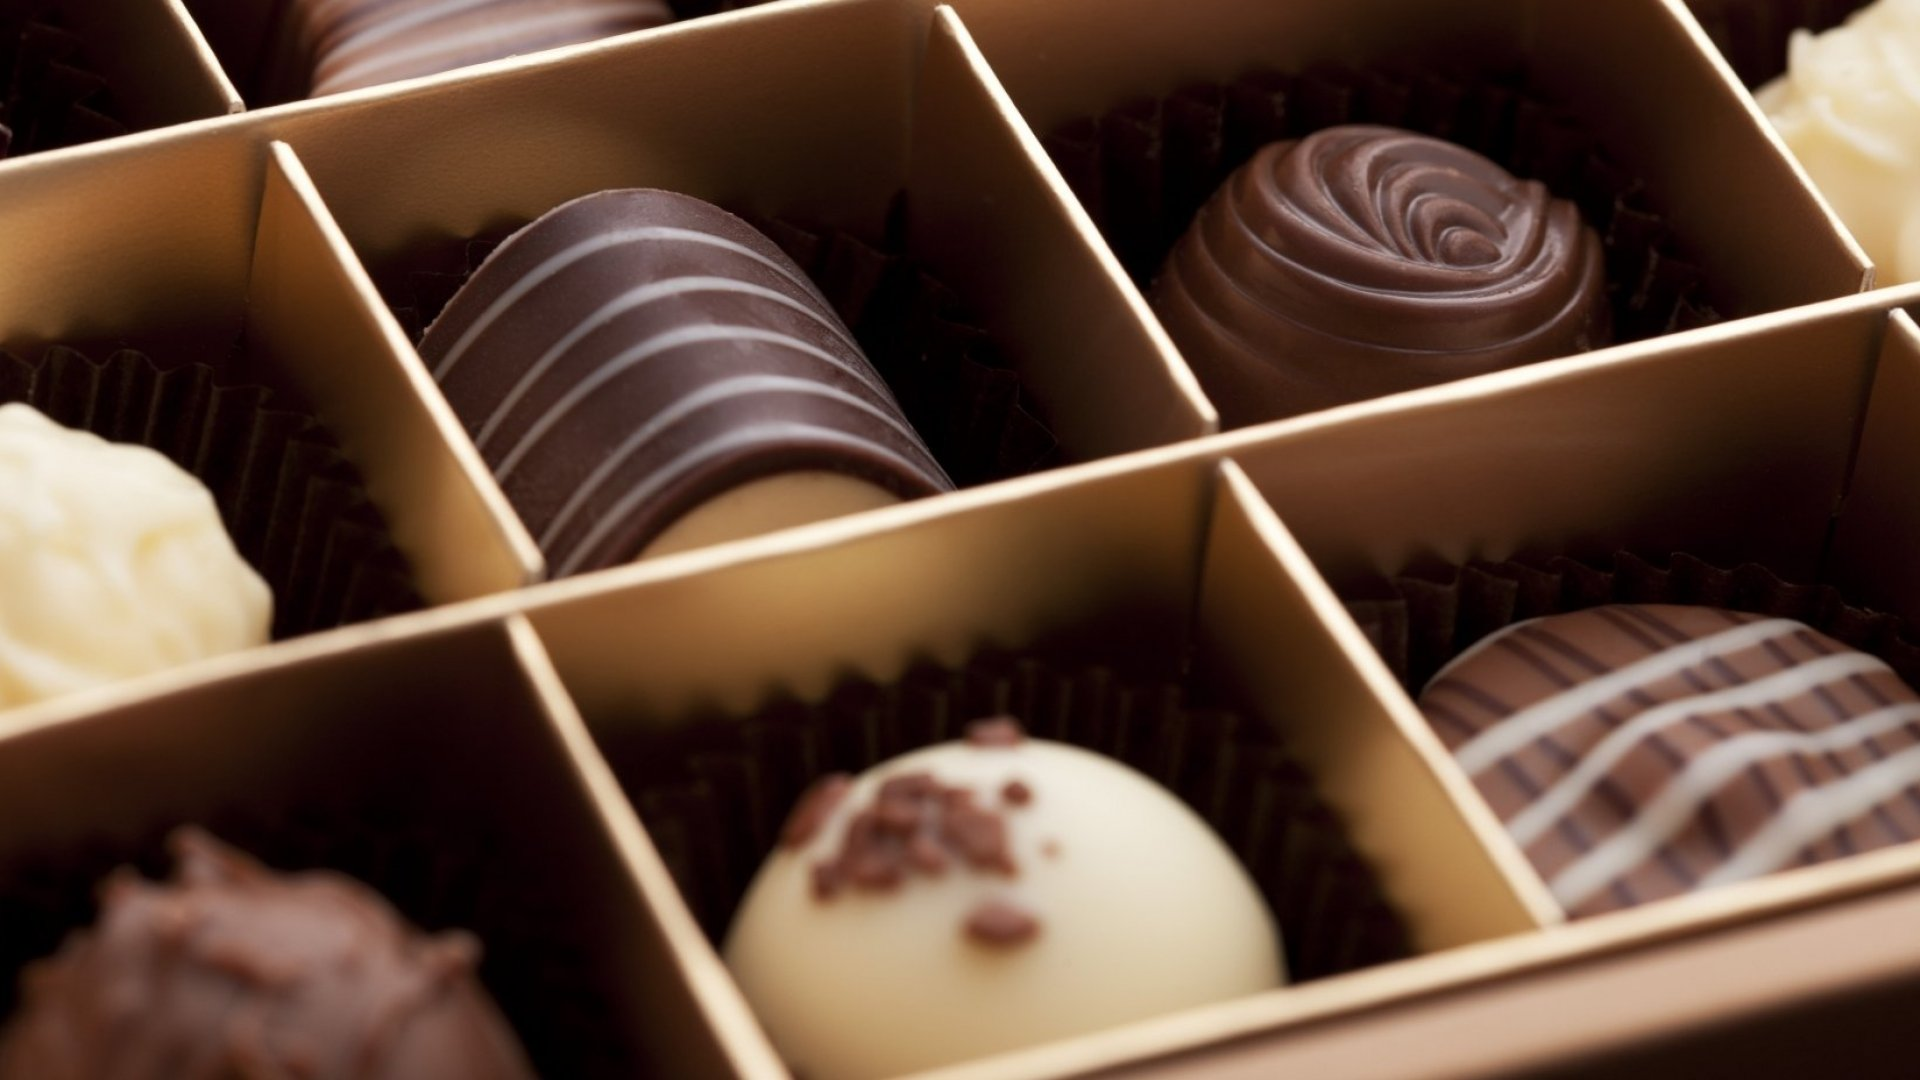 Go Ahead, Eat More Chocolate. It's Good for Your Brain